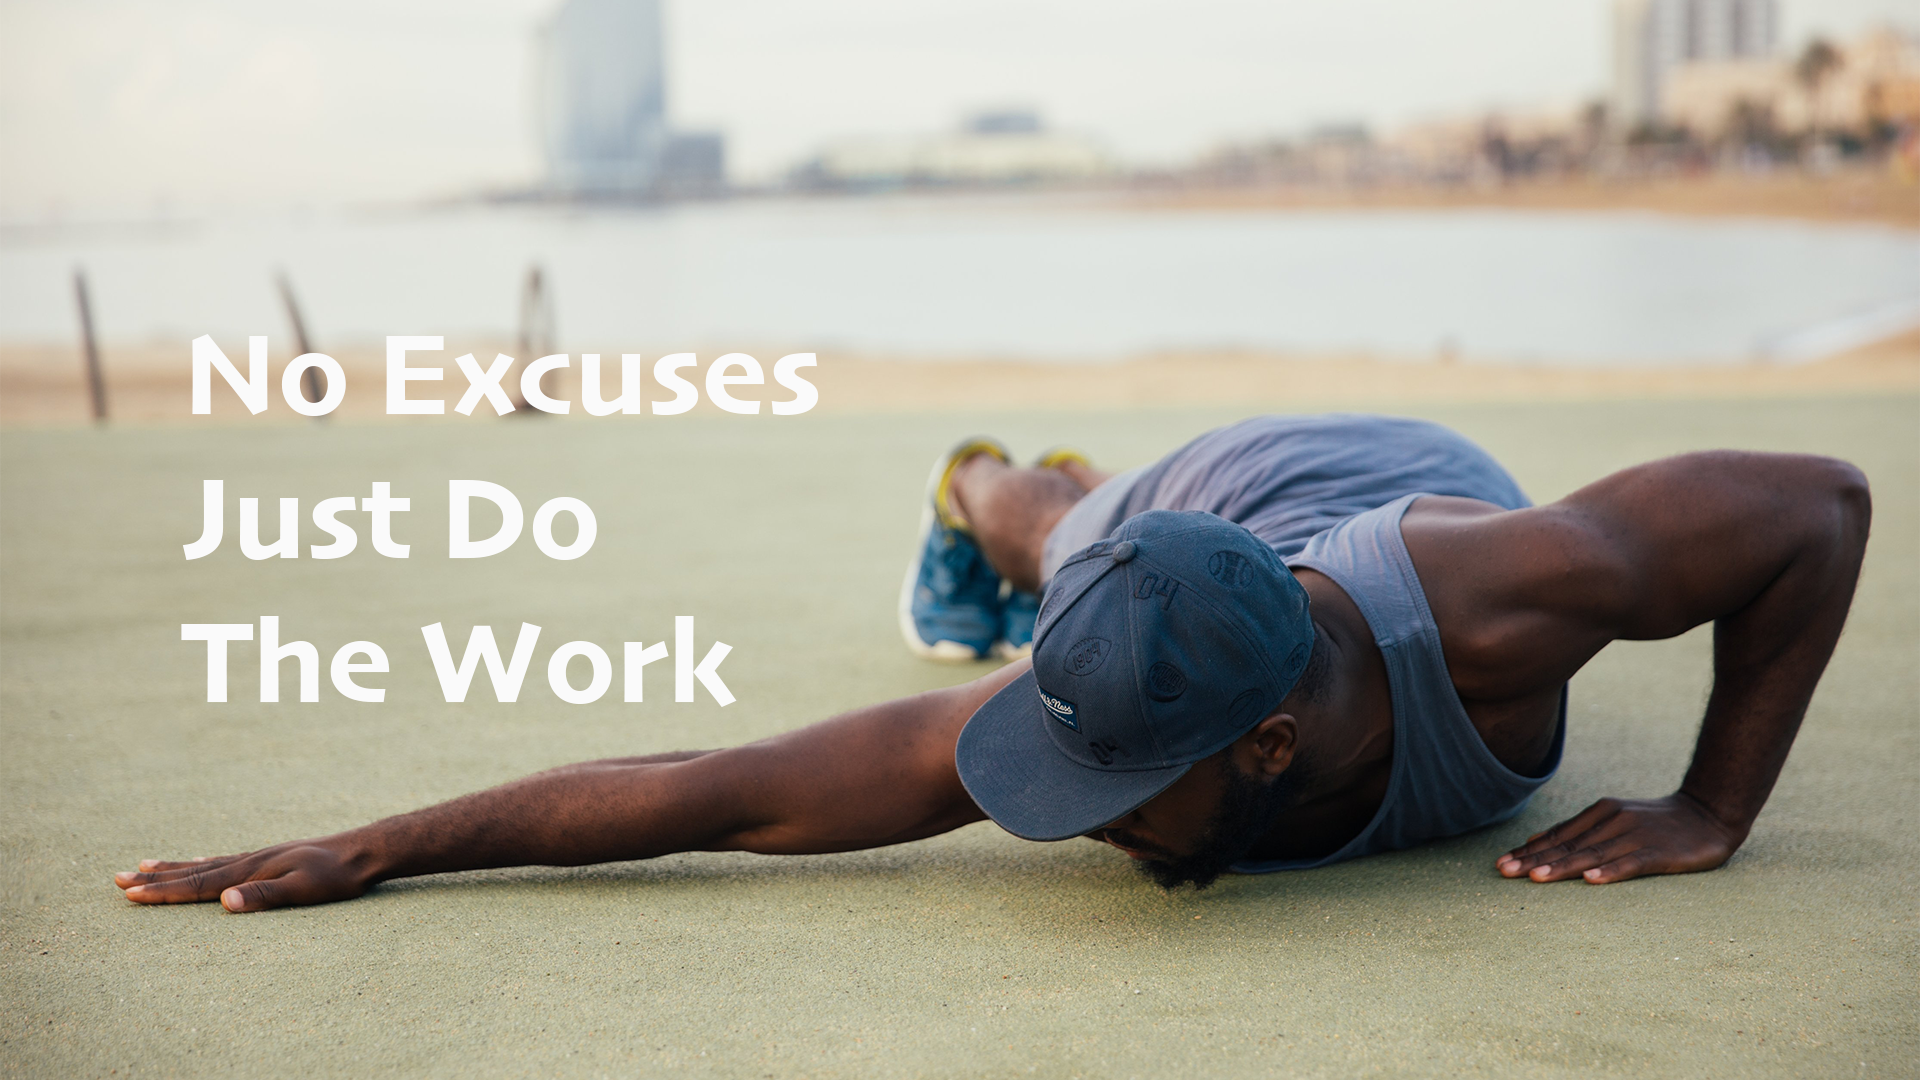 No Excuses Just Do The Work